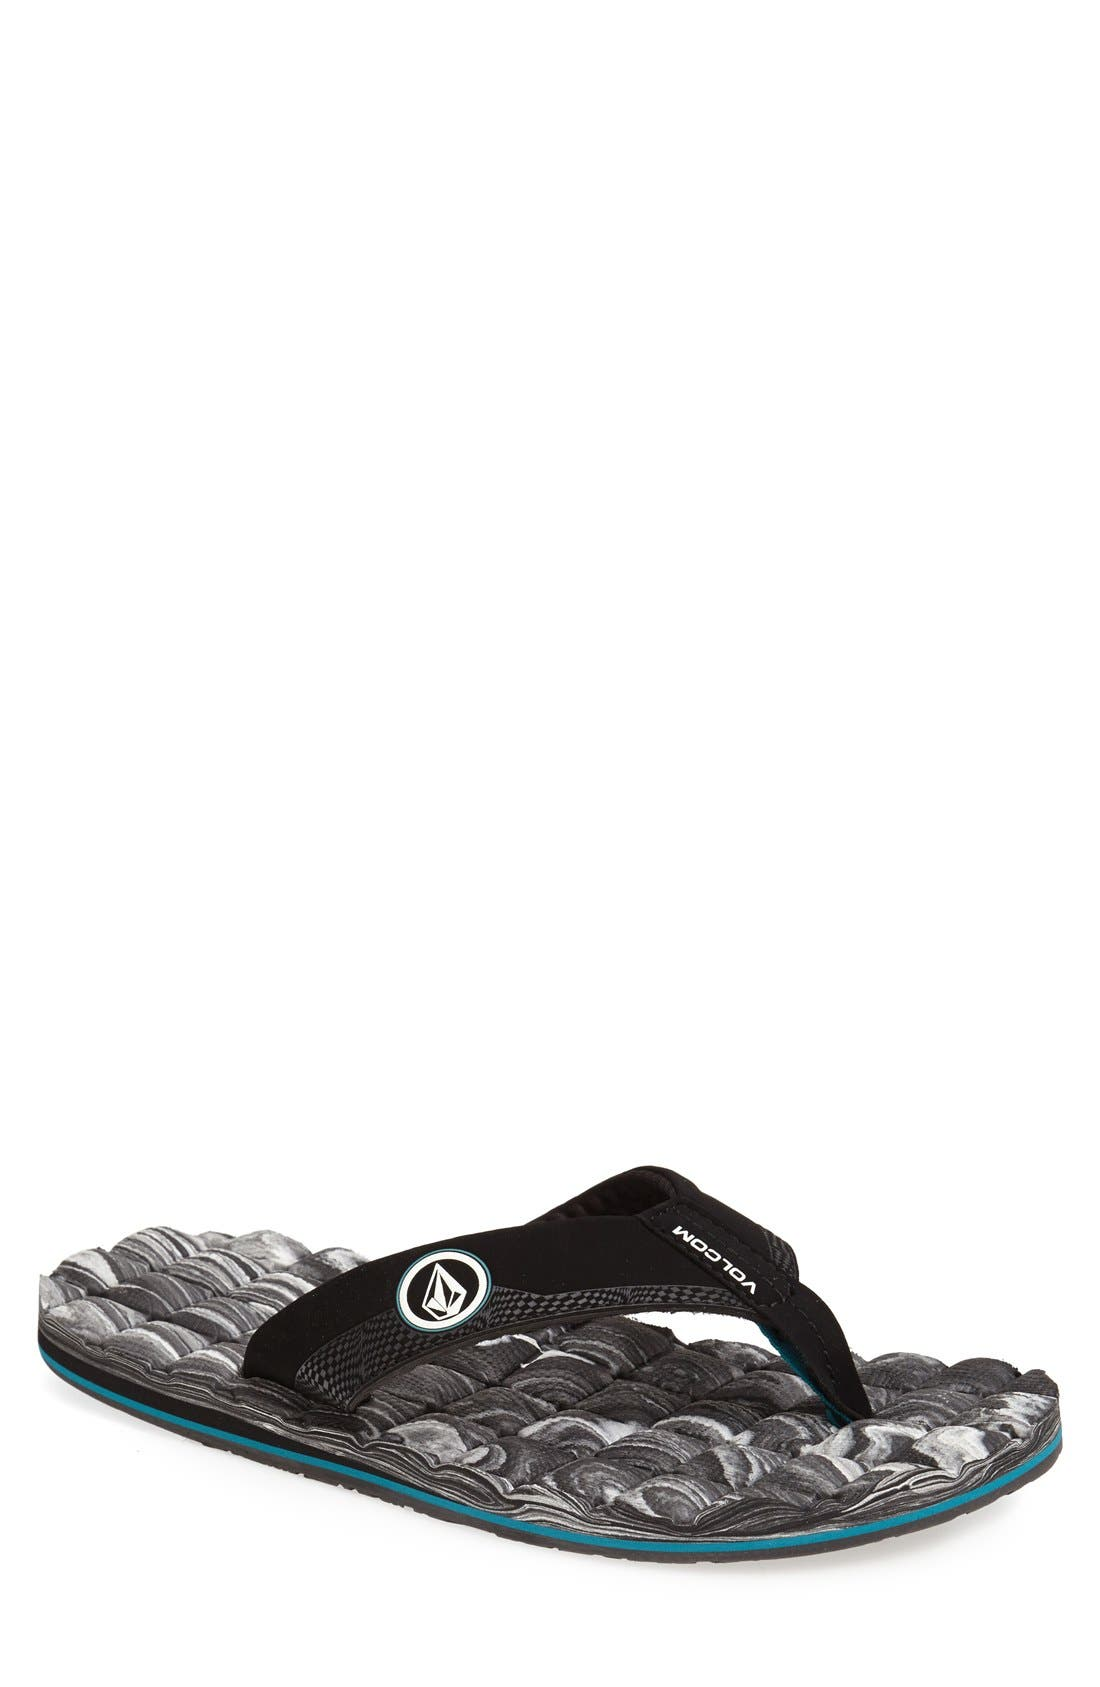 Main Image - Volcom 'Recliner' Flip Flop (Men)